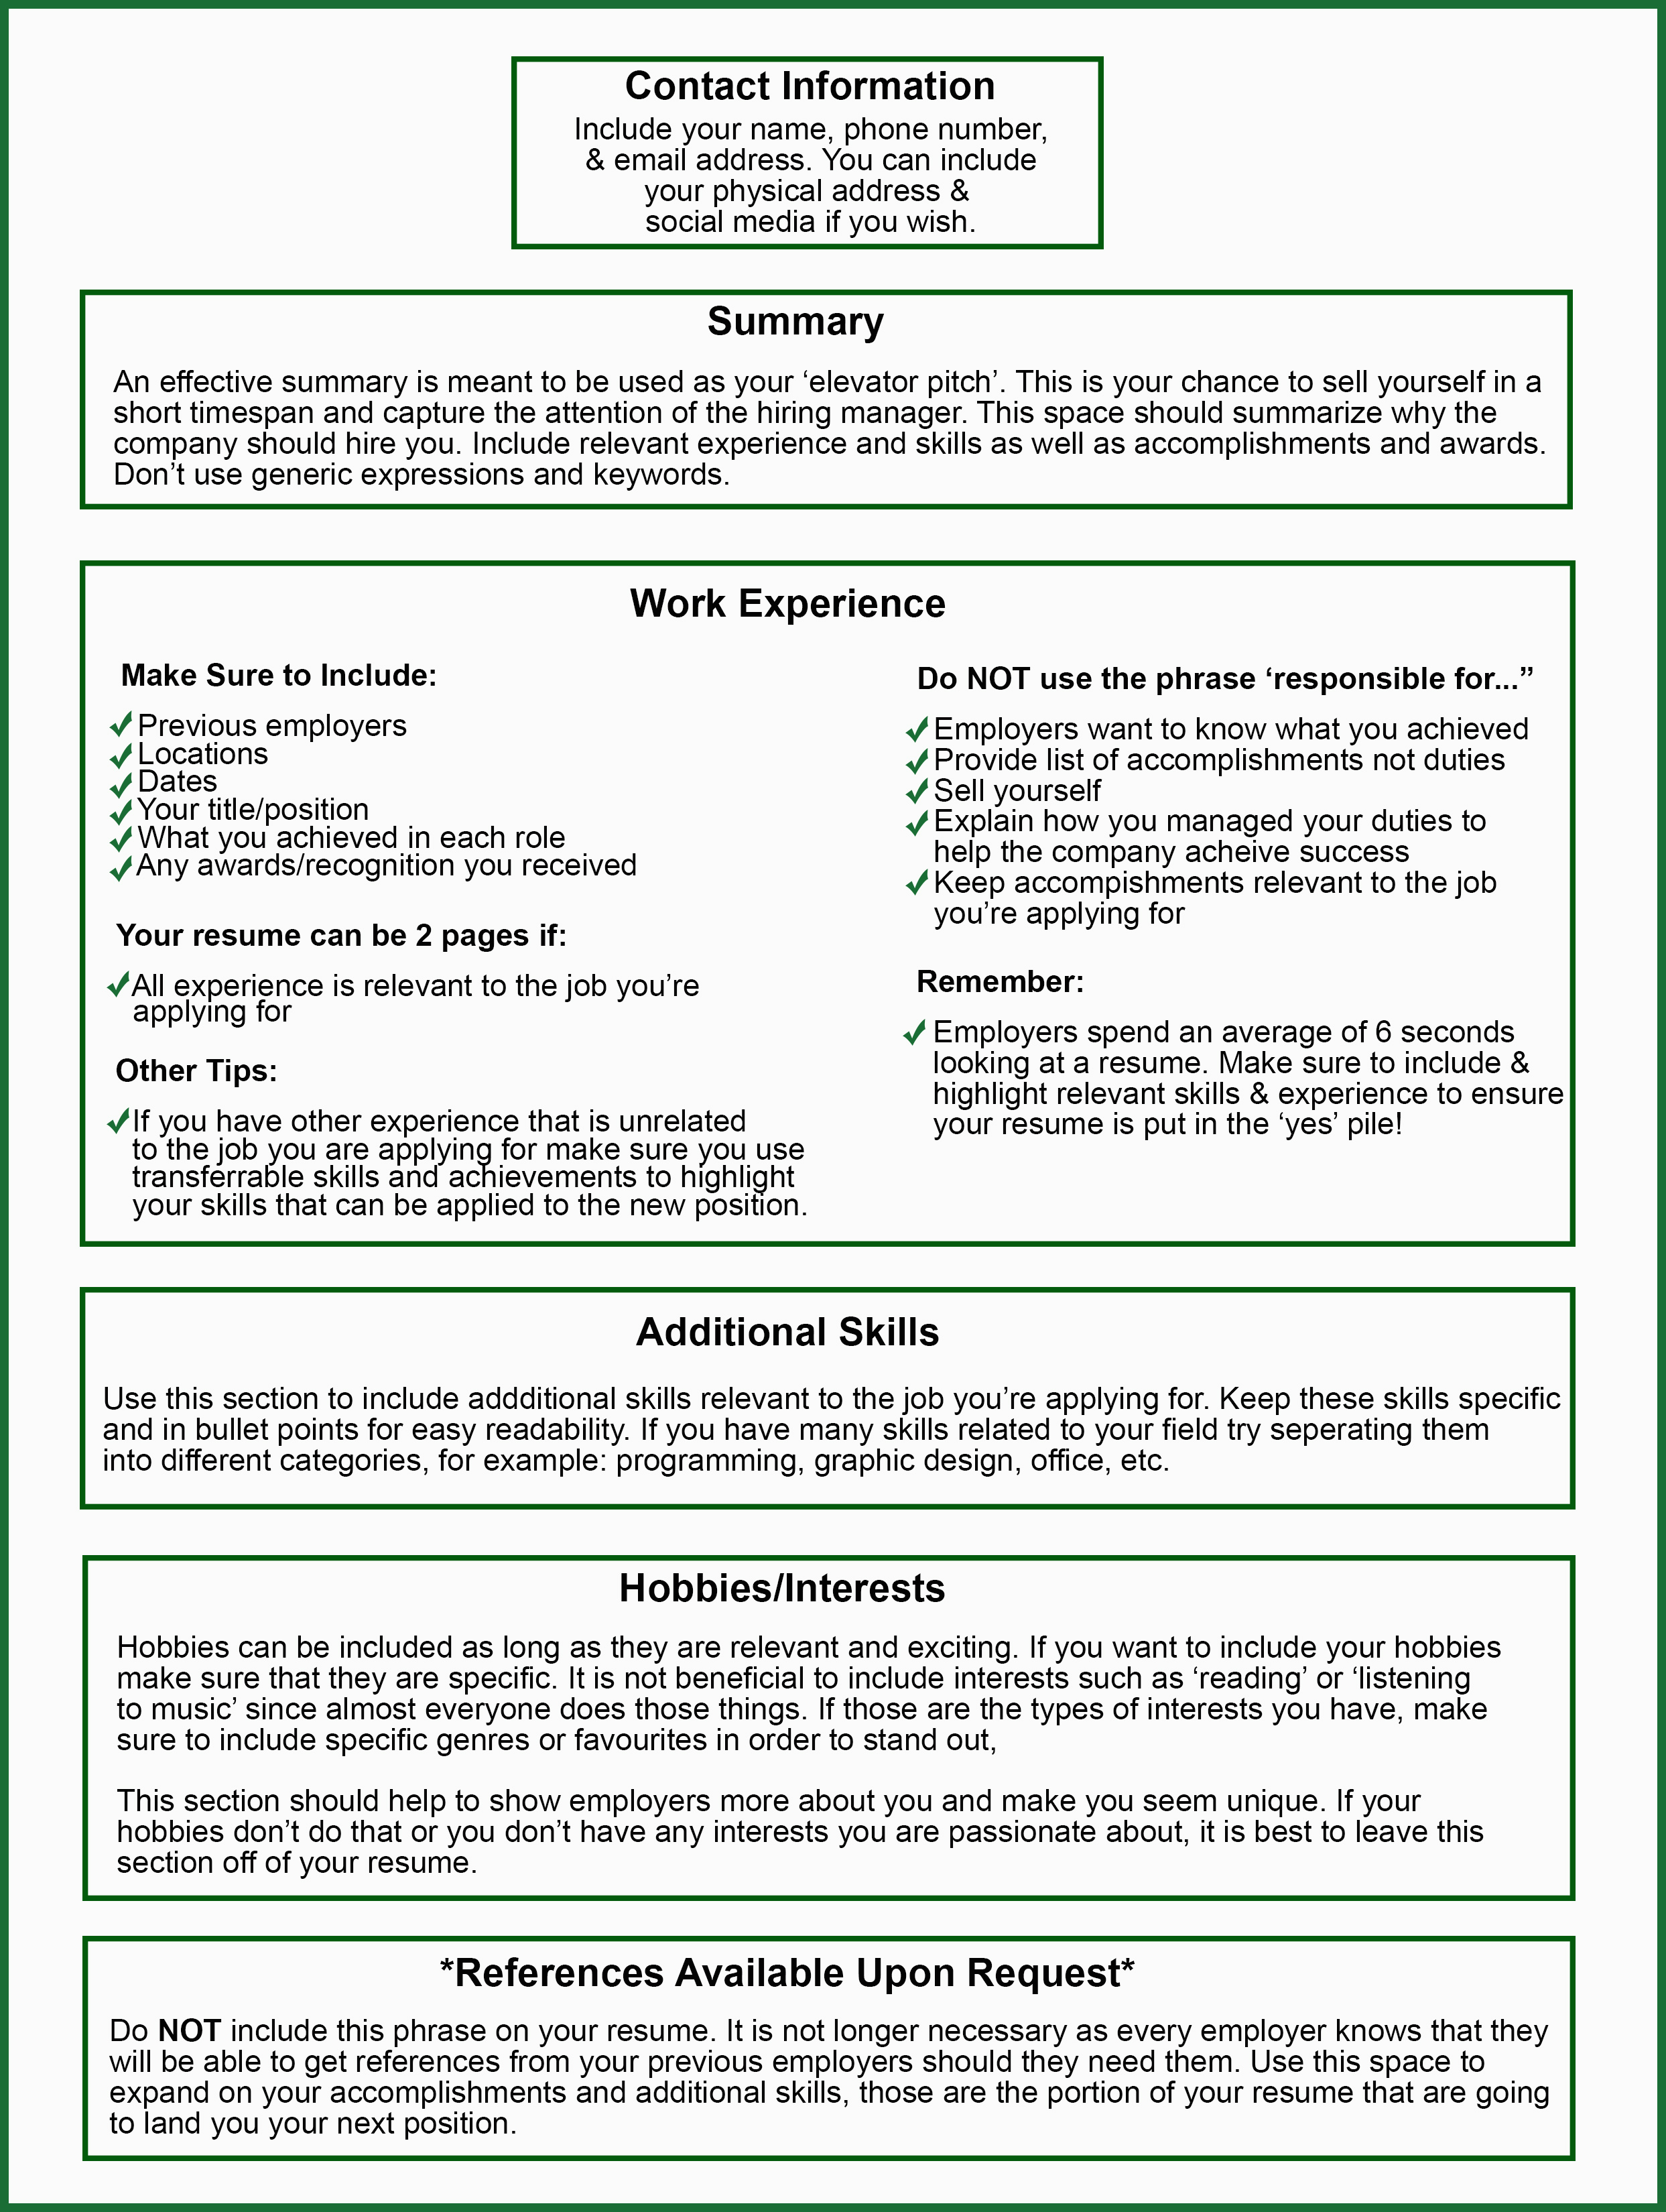 Resume What Information Should Be Included On A Resume writing your resume breakaway staffing other tips to consider when resume